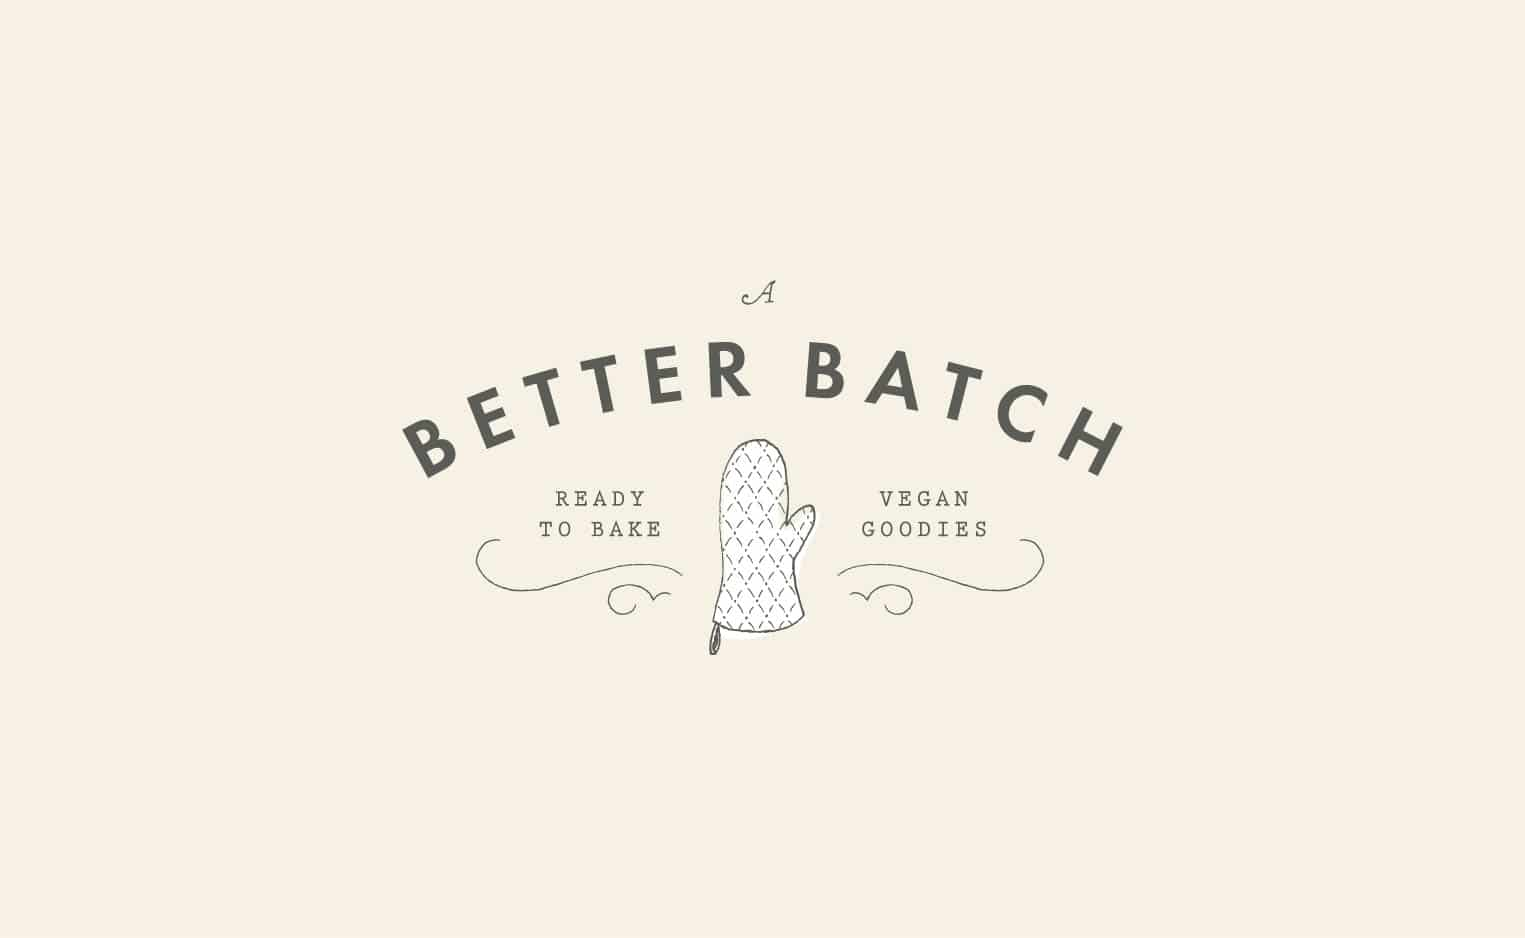 ABetterBatch_Blogpost-01